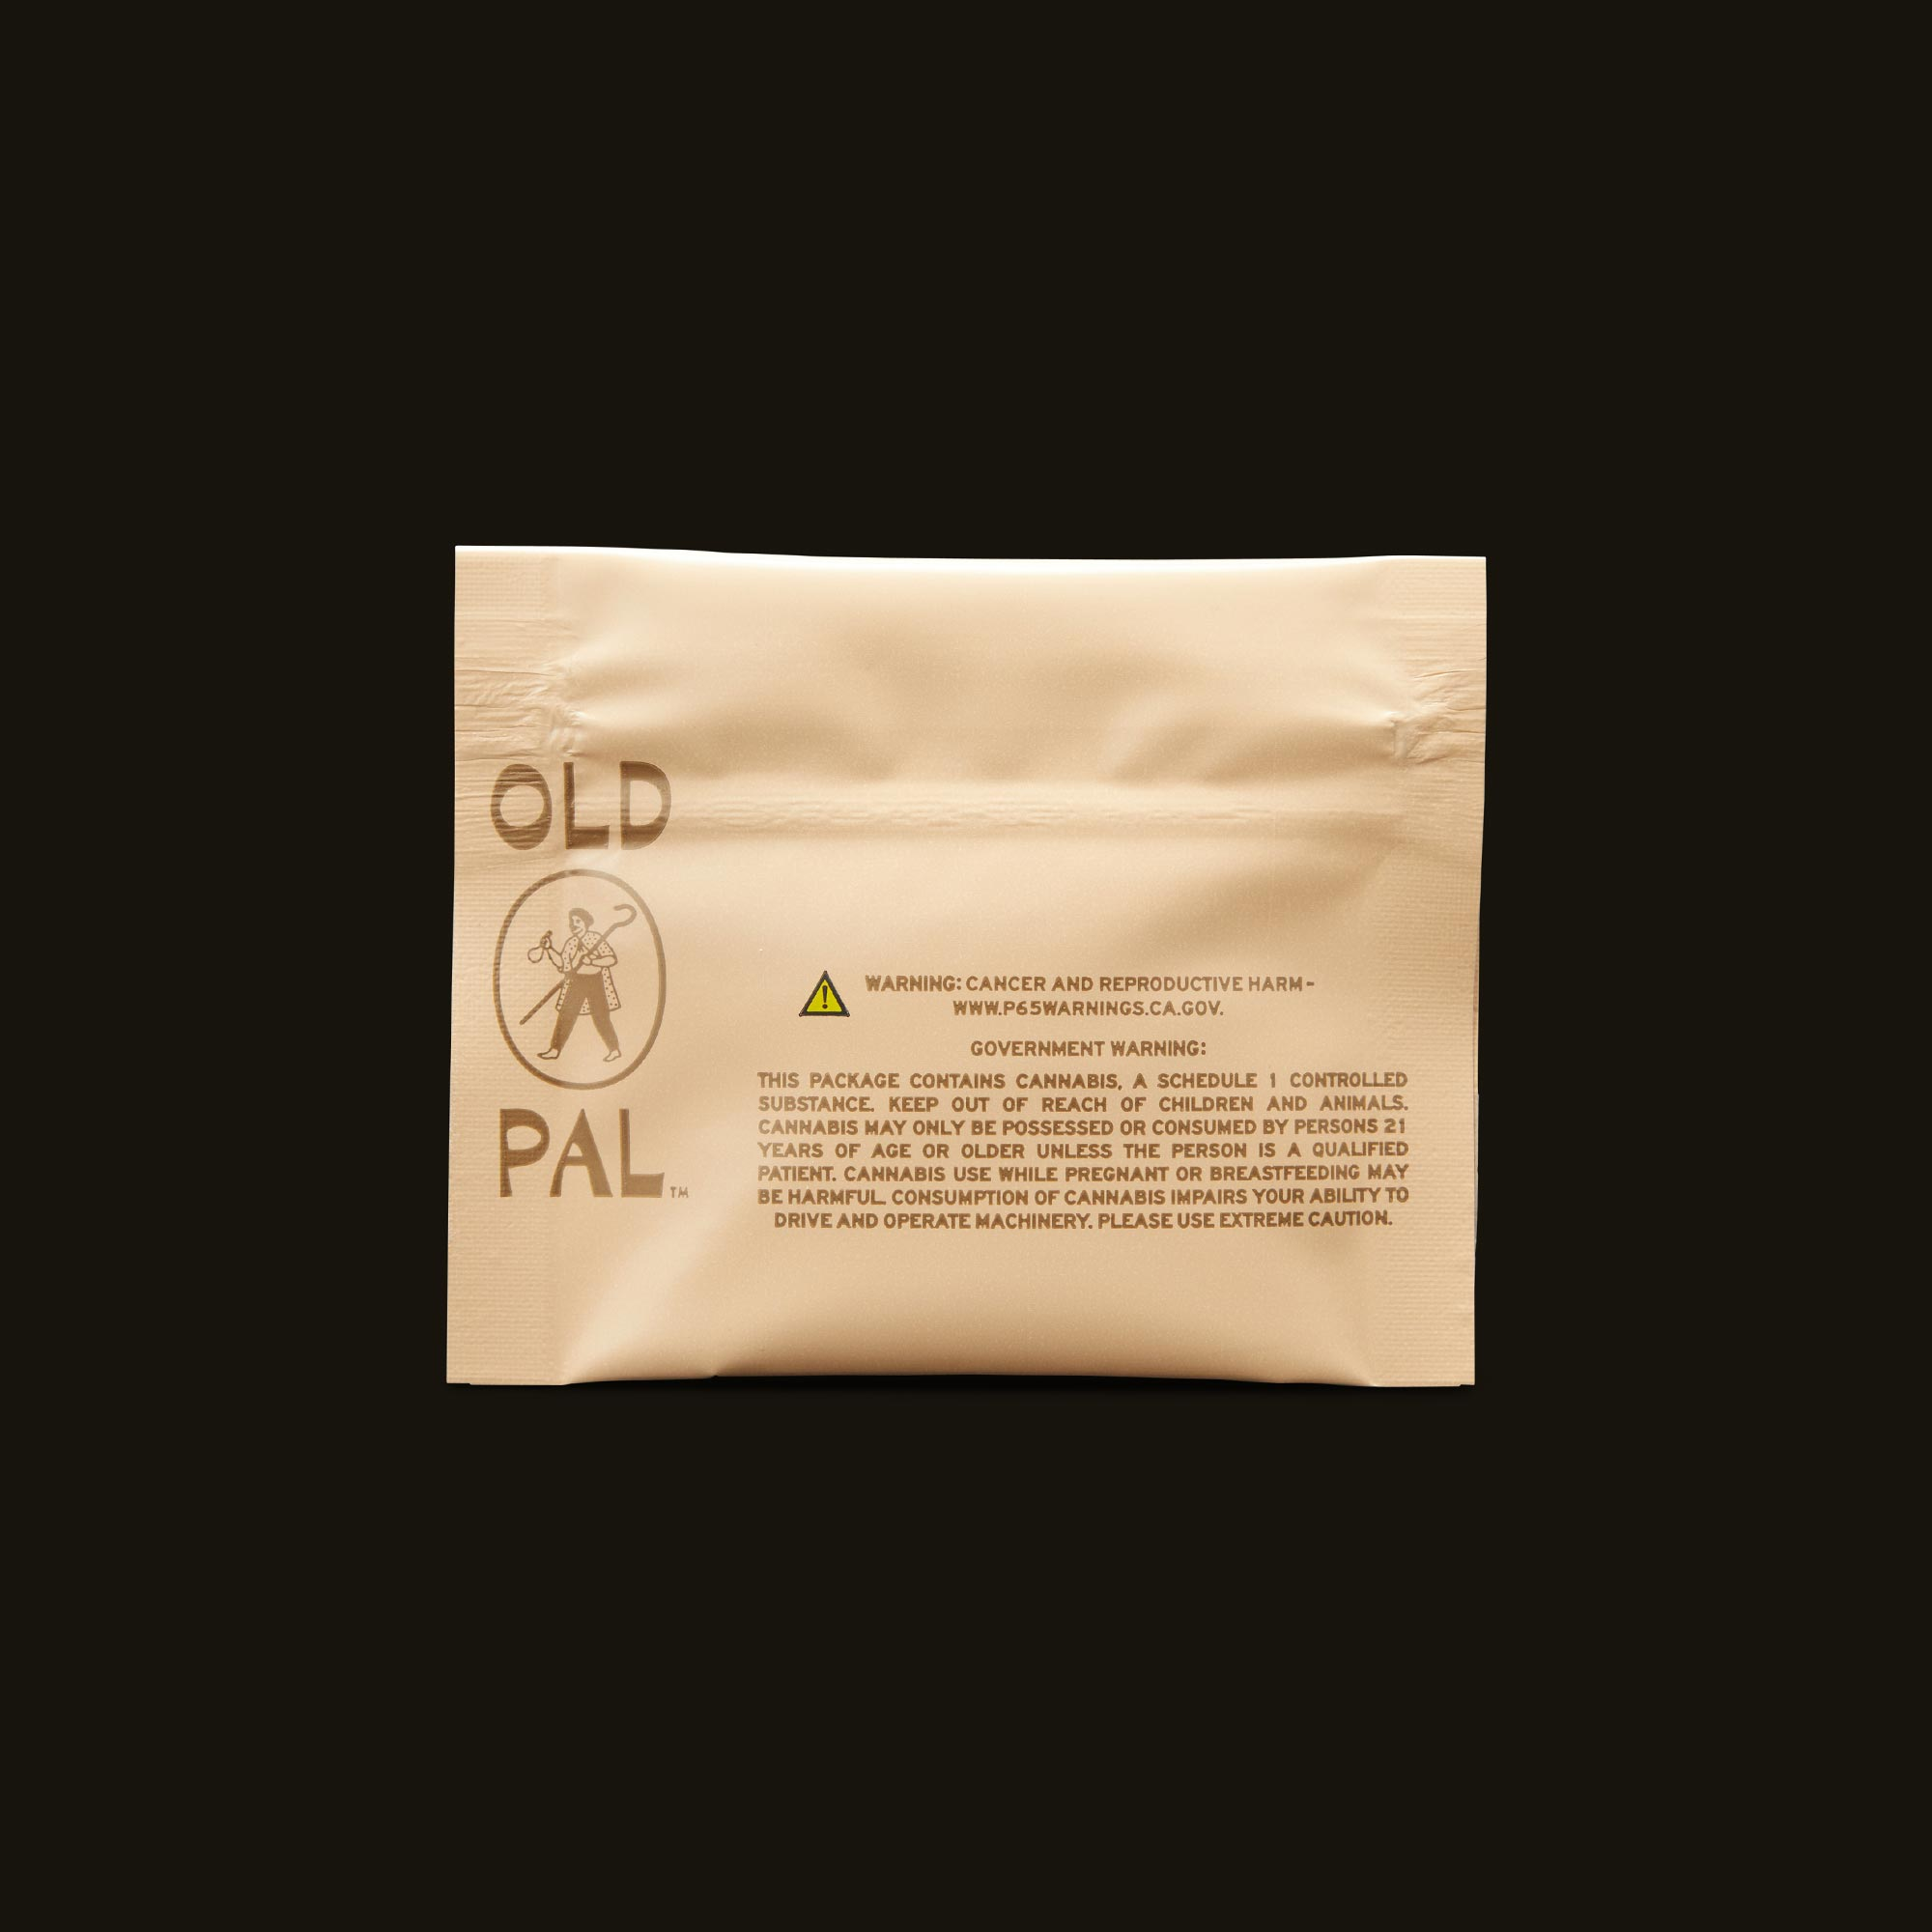 OLD PAL Sativa 5g Ready to Roll Back Packaging